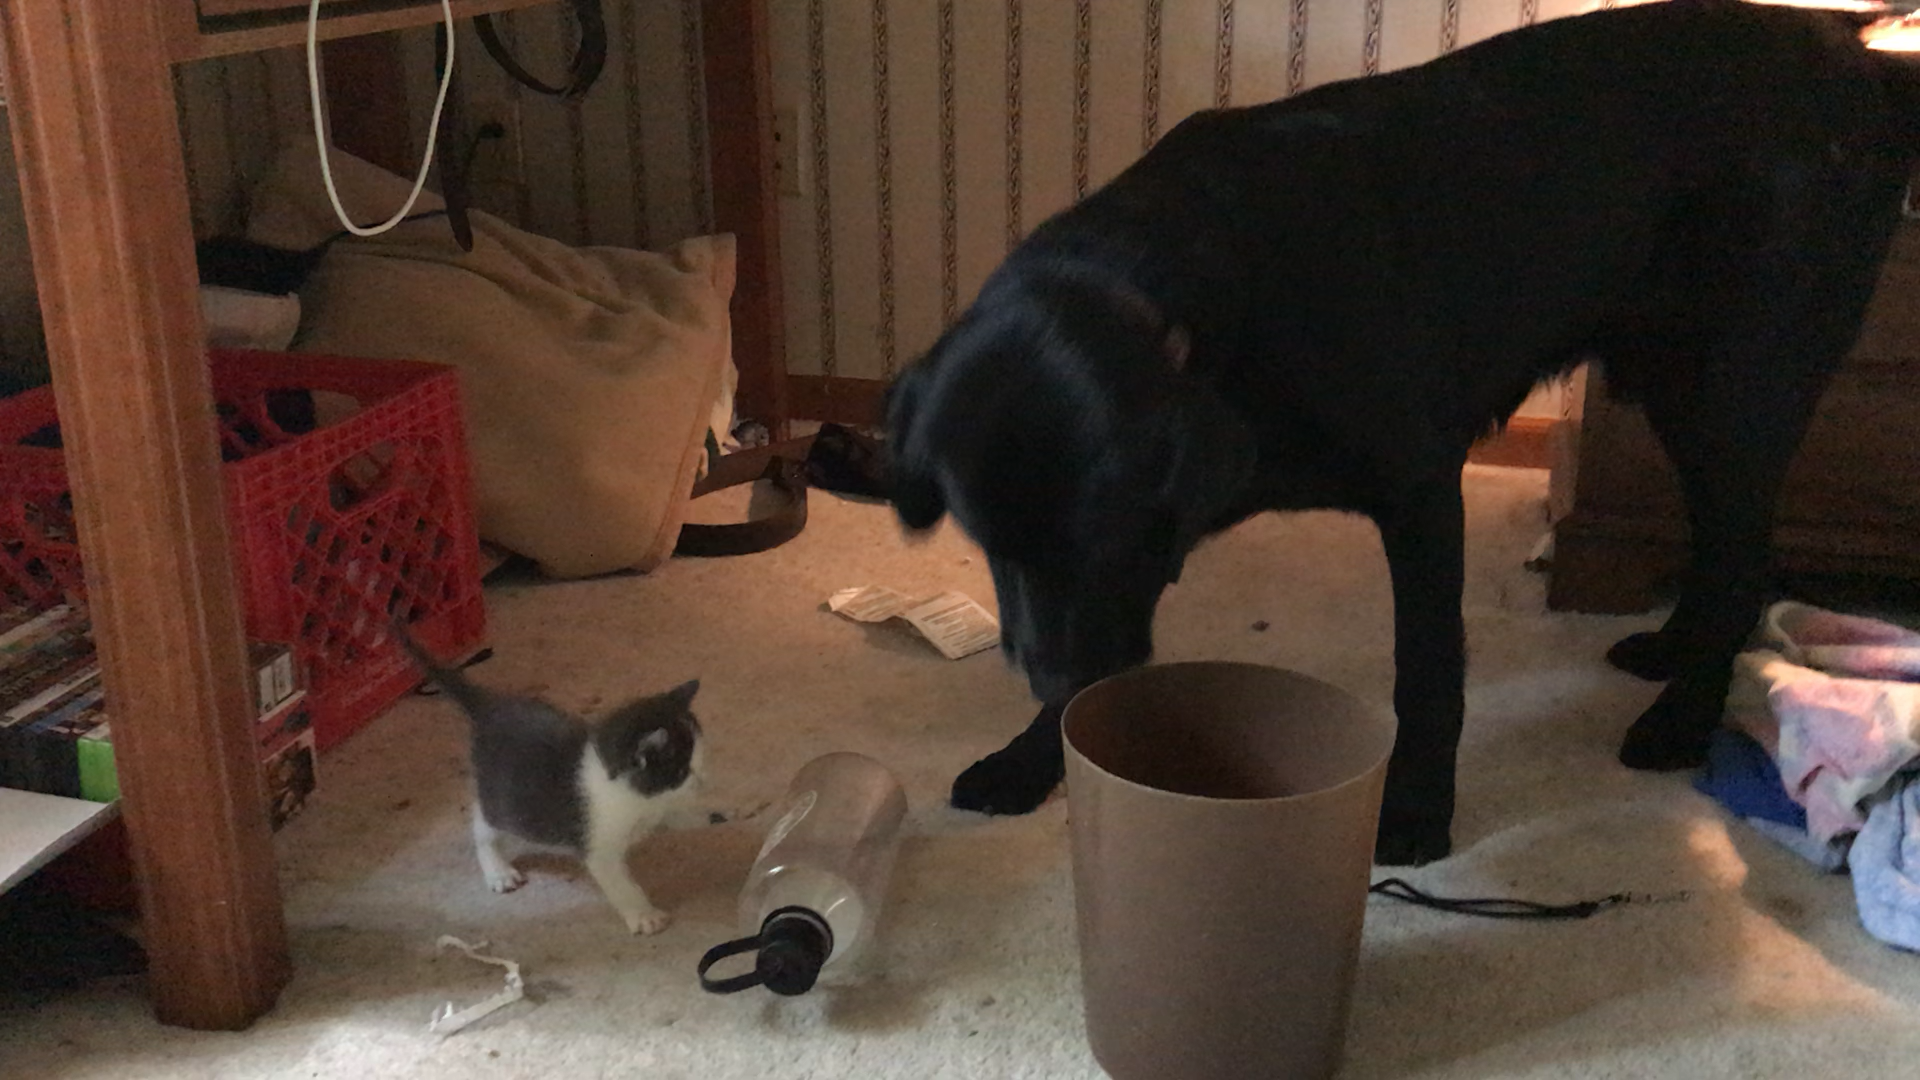 My Kitten Meeting My Family Lab For The First Time Https Ift Tt 2nvel0h Kitten Cute Animals Animal Pictures